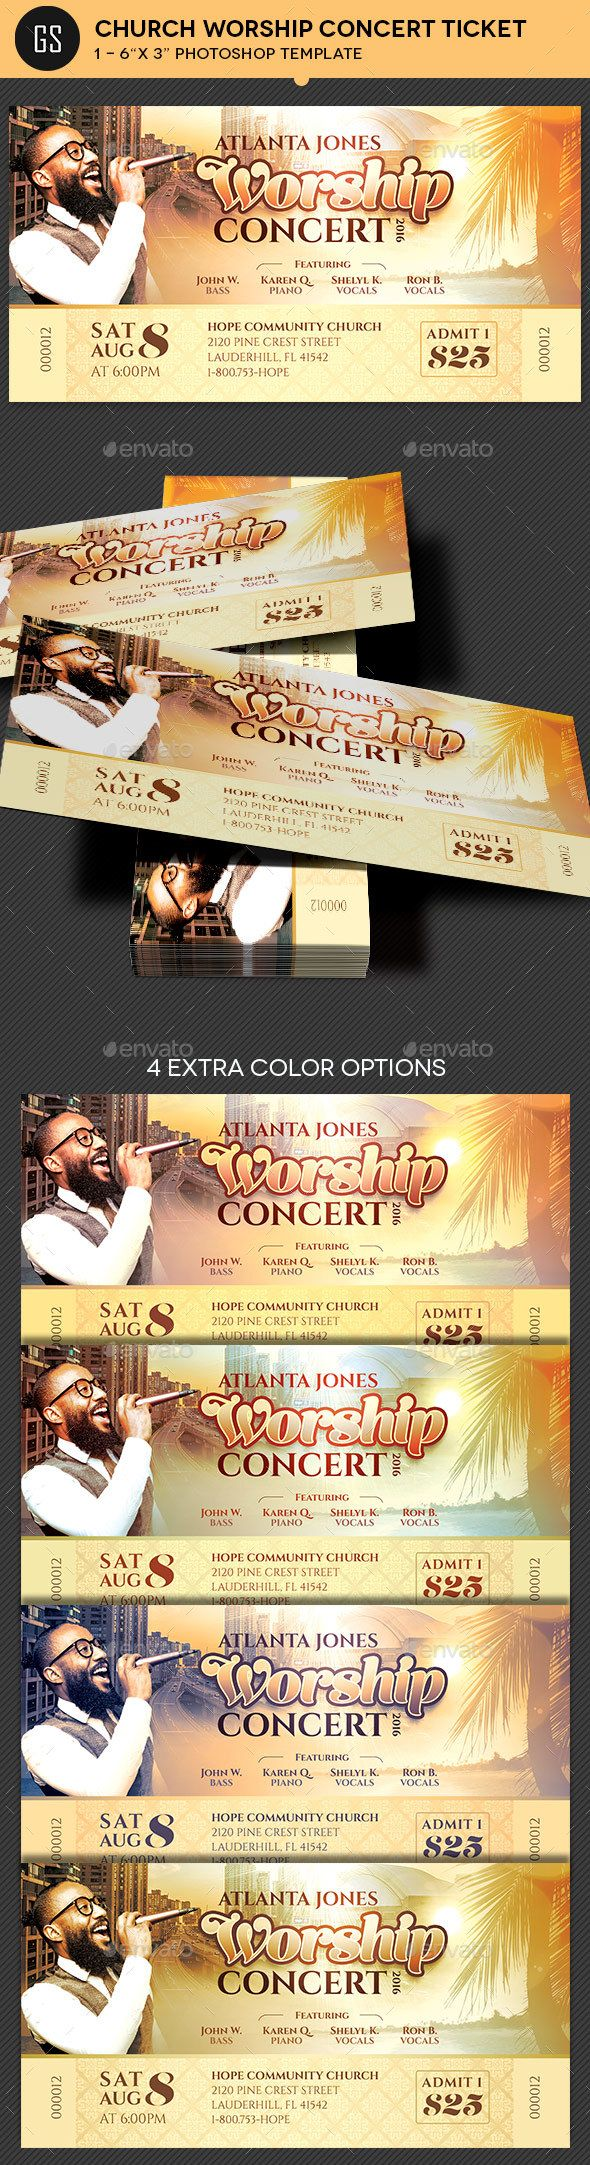 Church Worship Concert Ticket Template – Make Your Own Concert Ticket